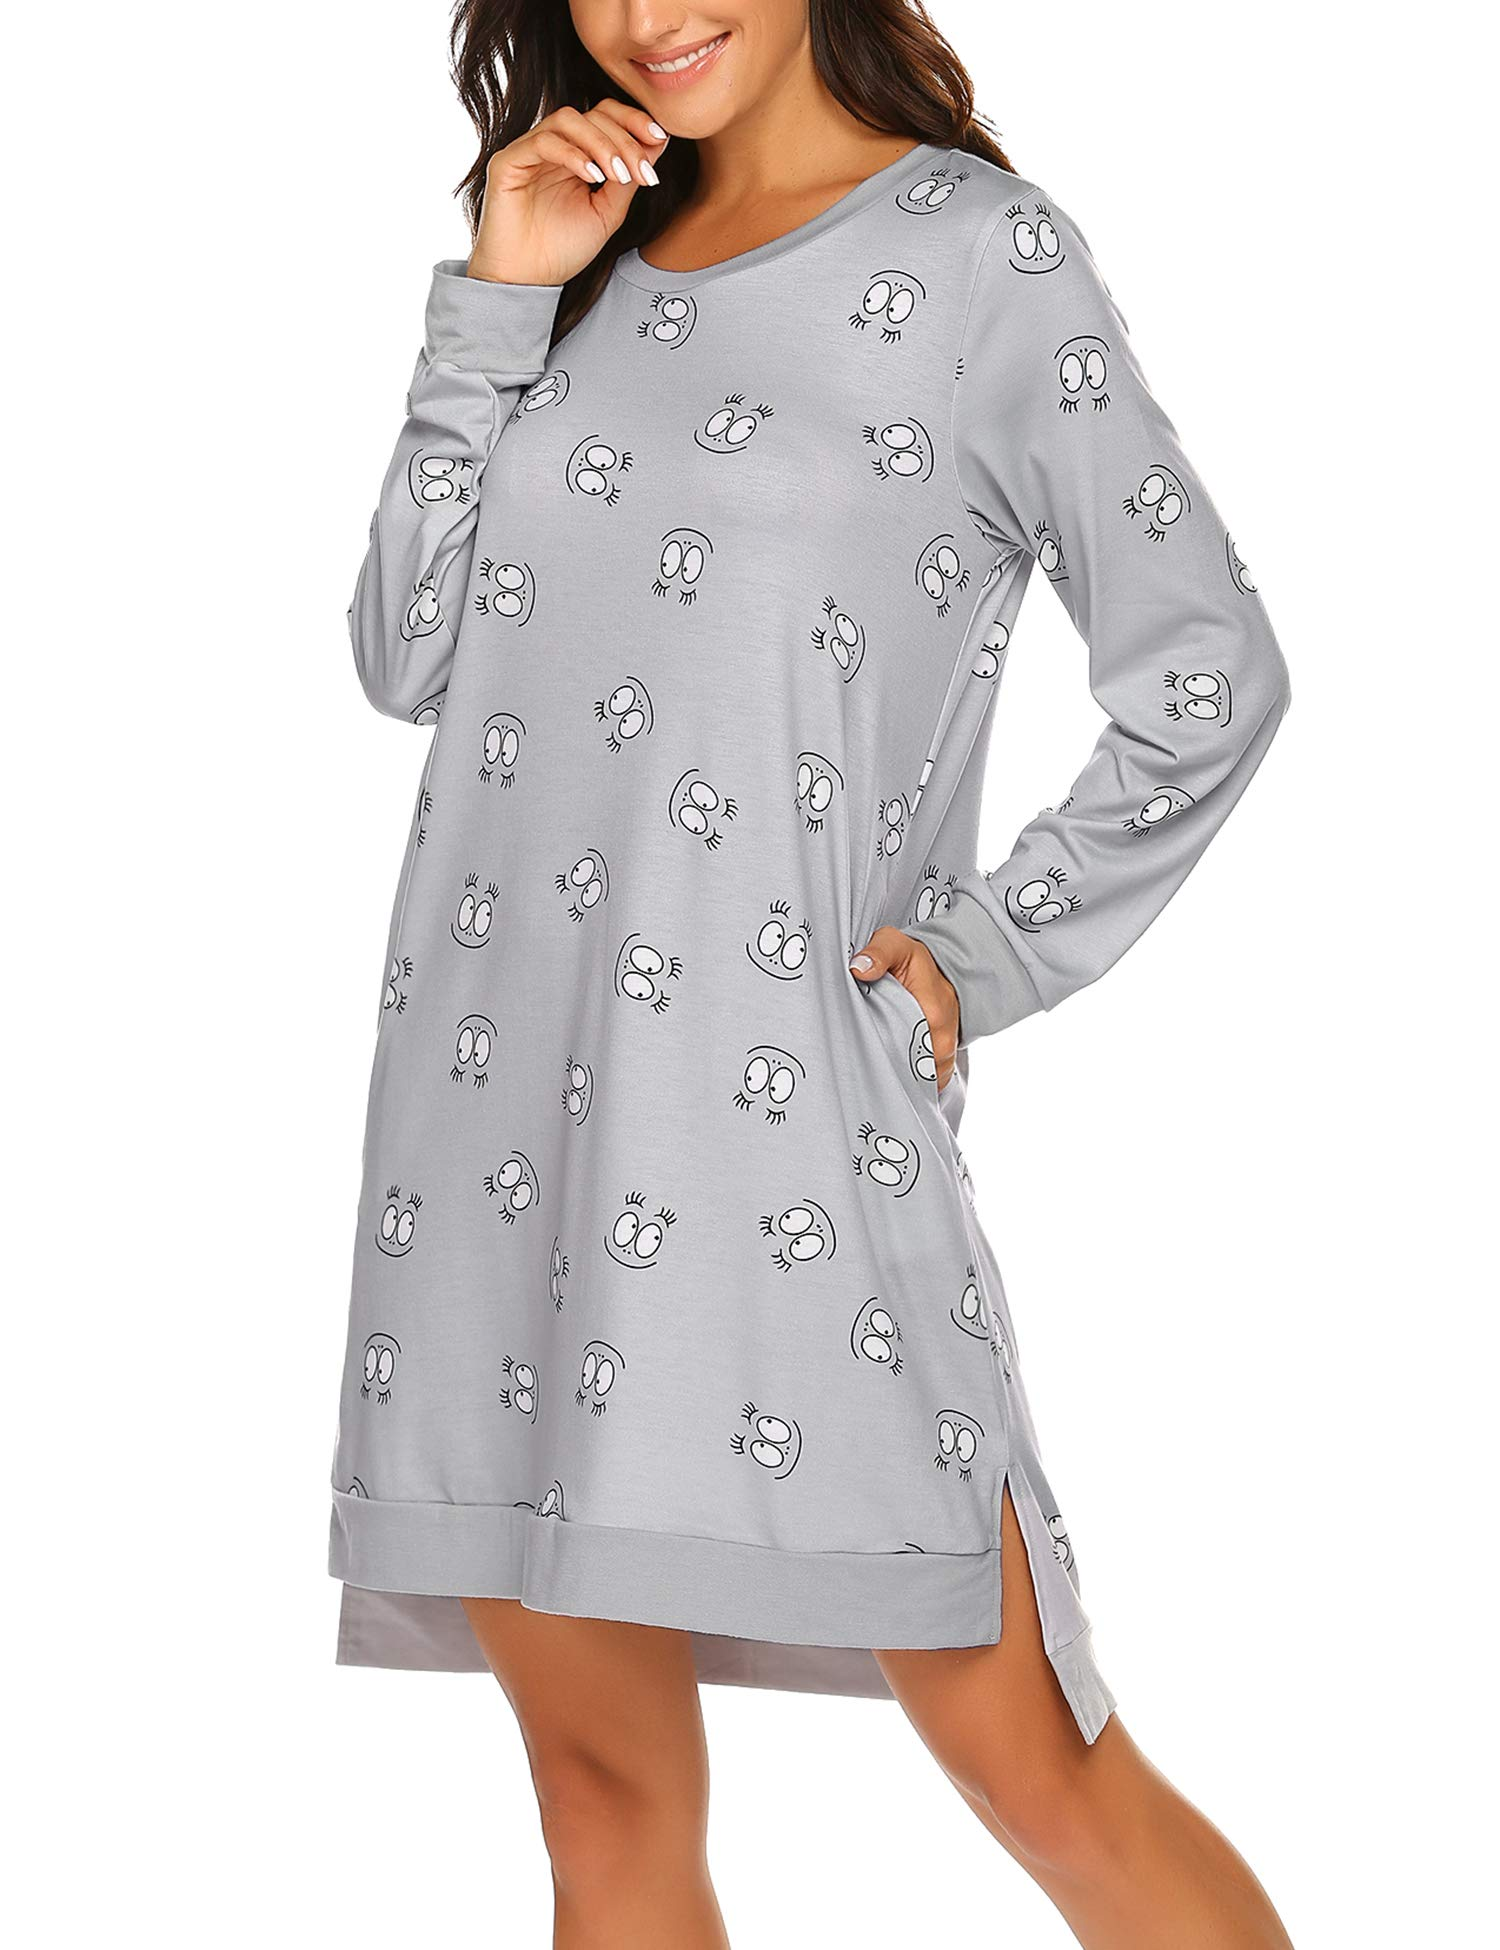 Hotouch Loungewear Long Sleeve Nightgown Printed Soft Sleep Shirts with Pocket S-XXL